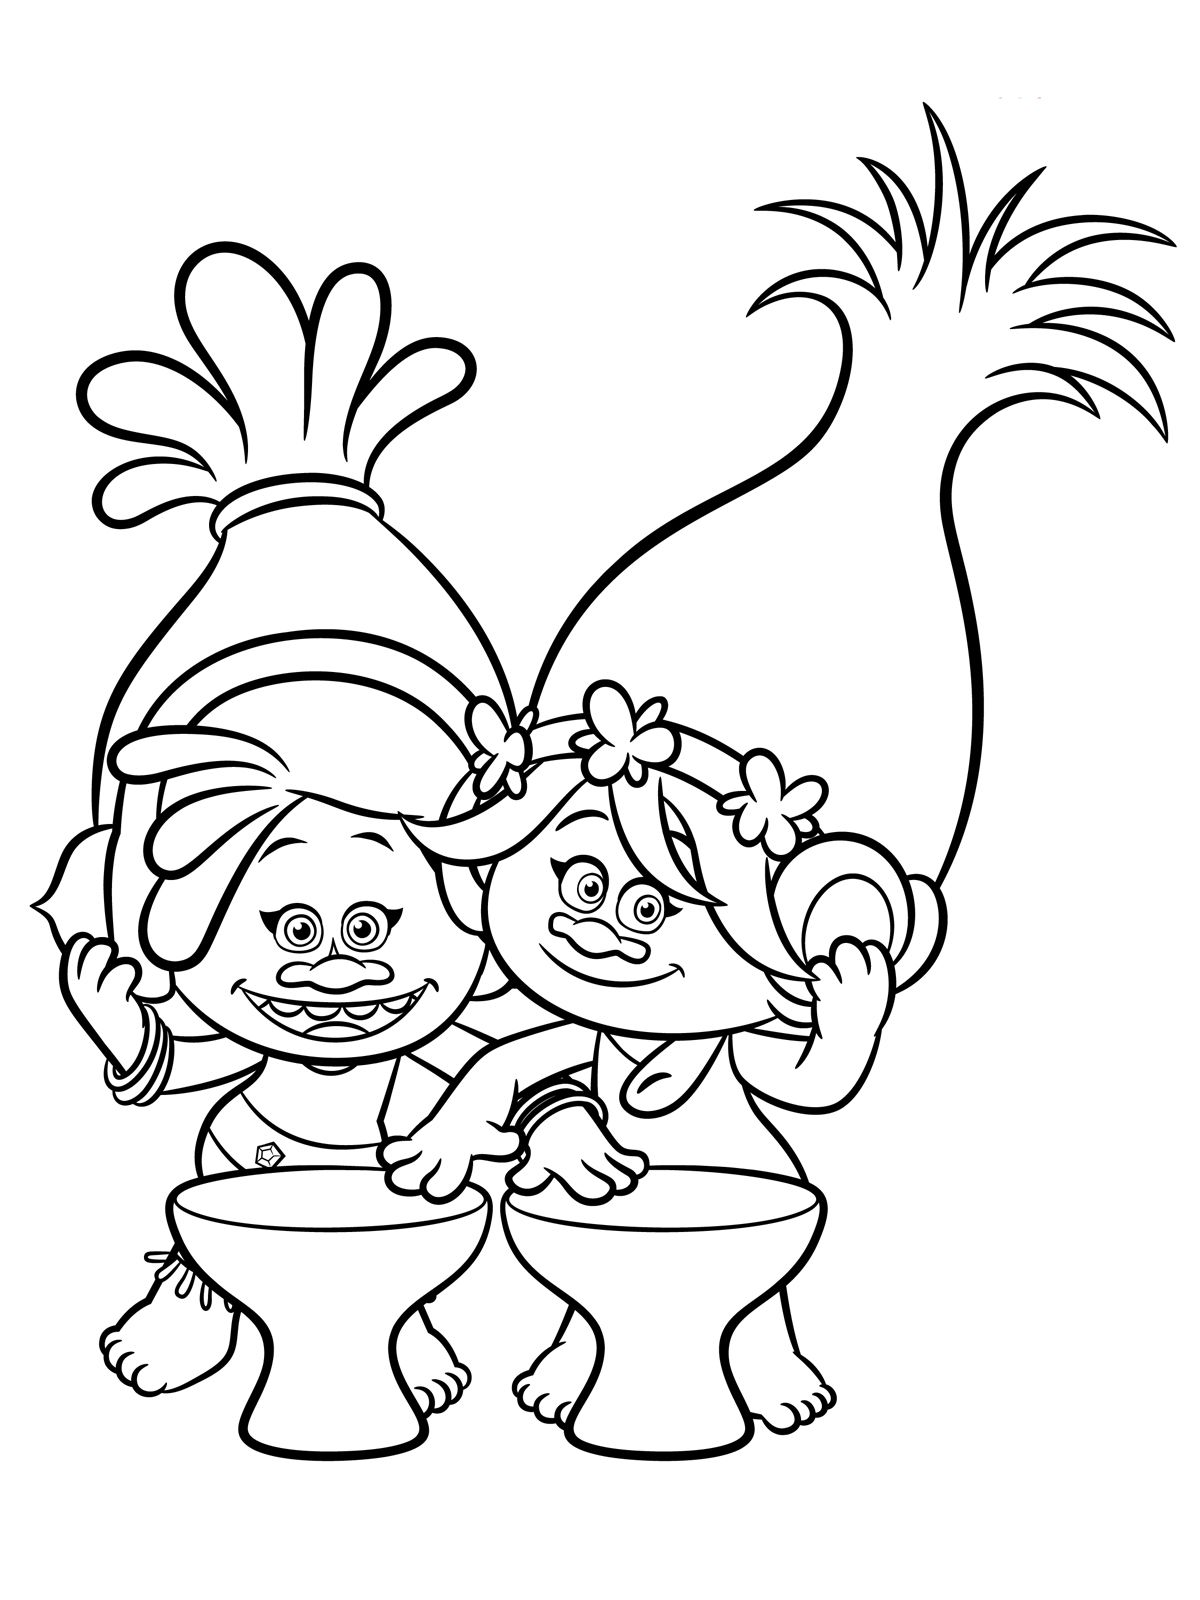 Free coloring pages for reading - Trolls Coloring Pages To Download And Print For Free